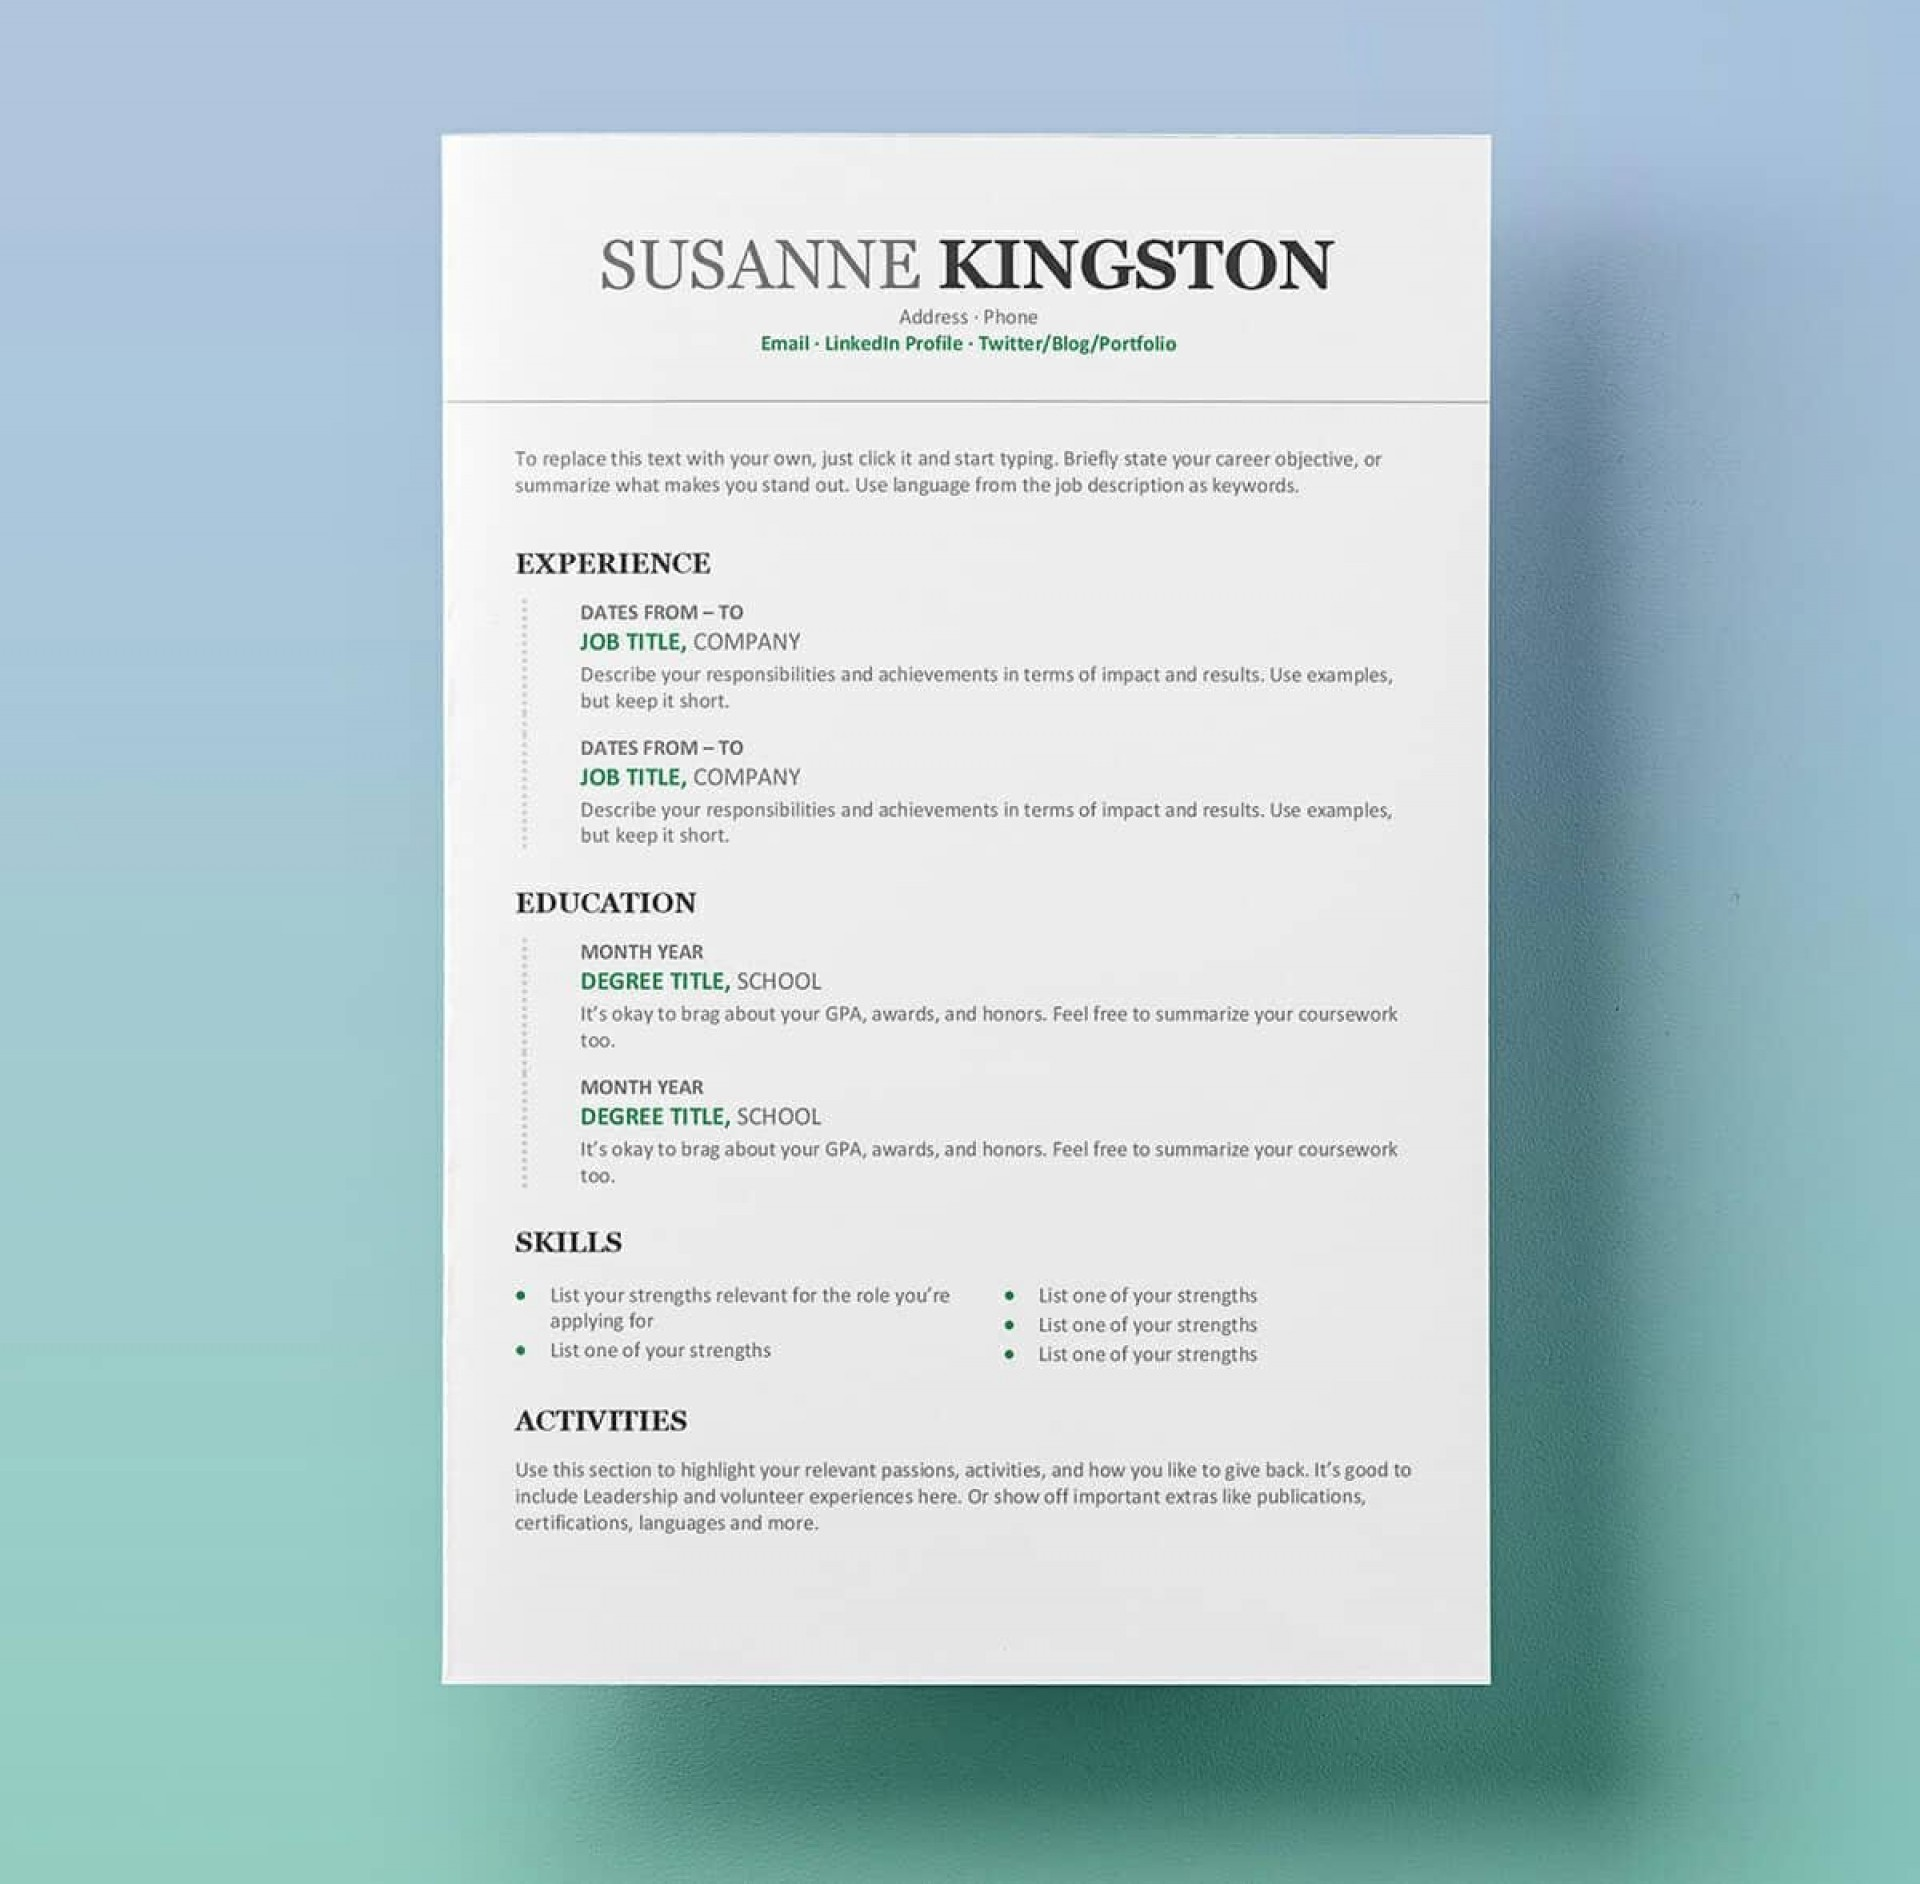 008 Archaicawful Resume Template Free Word Design  Download 2020 Cv1920